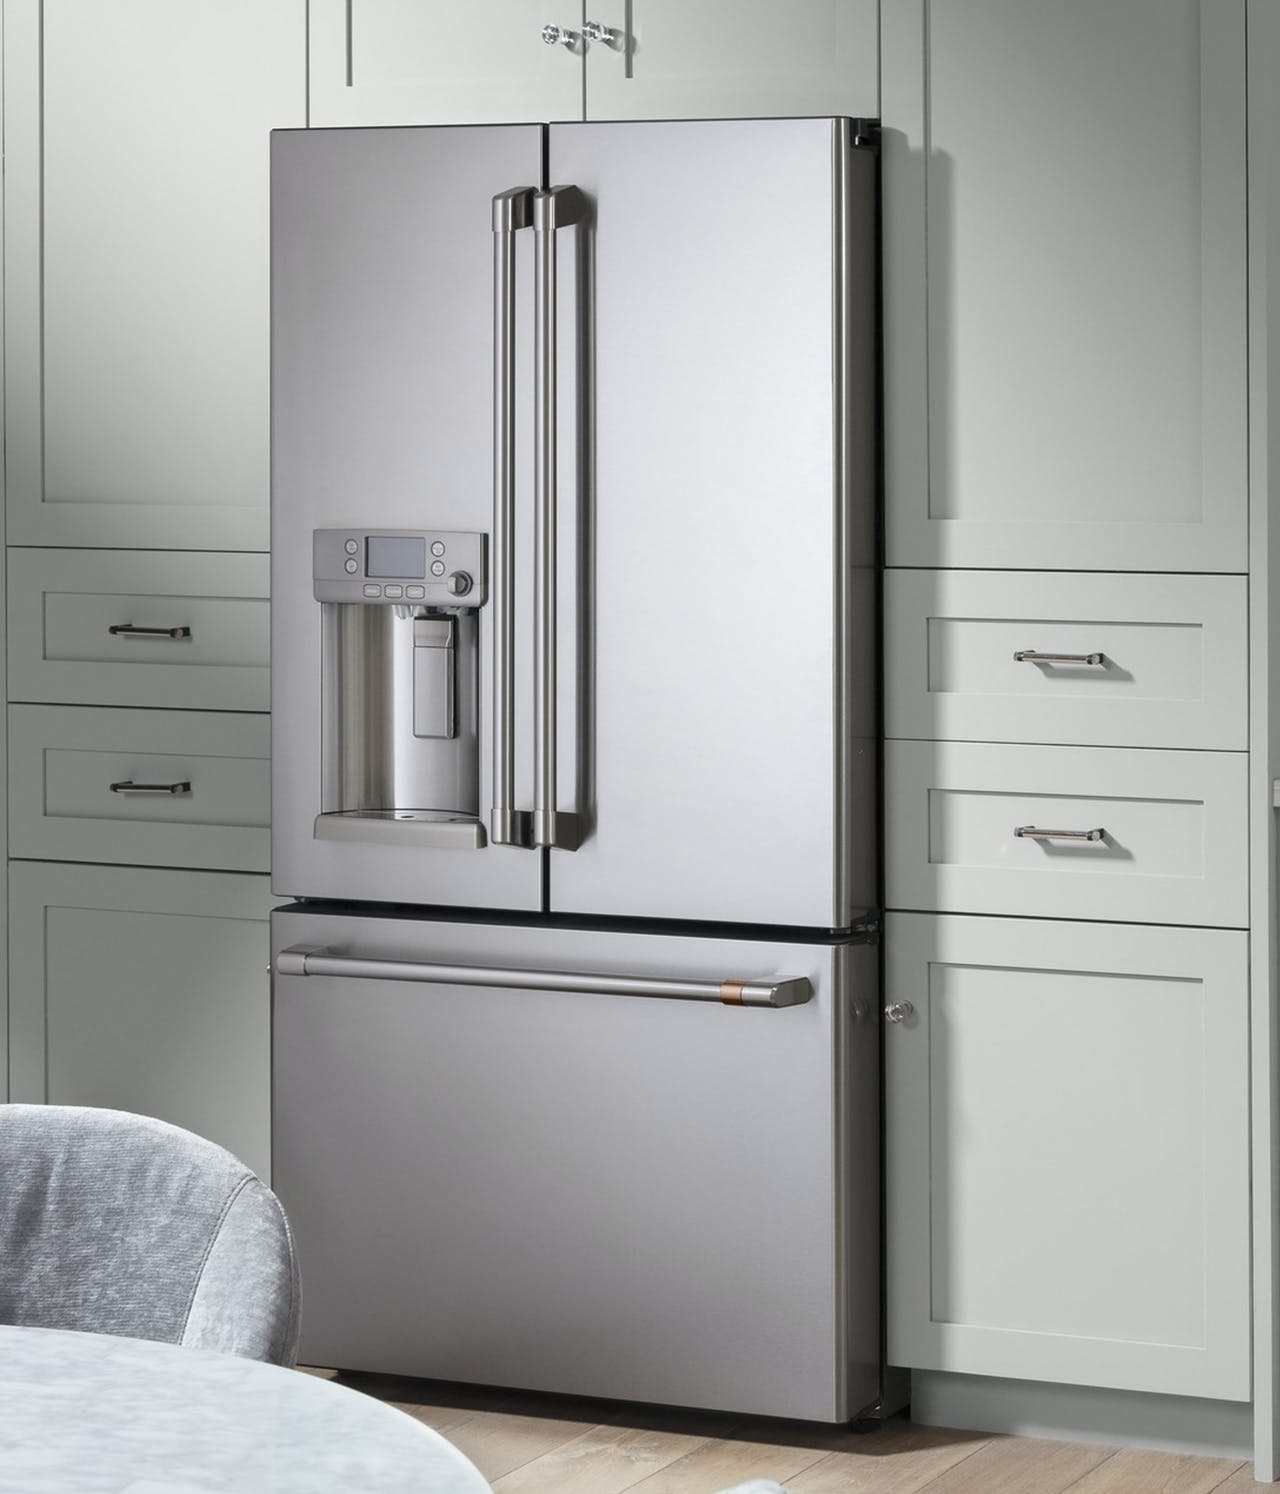 stainless steel french door refrigerator with brushed stainless hardware